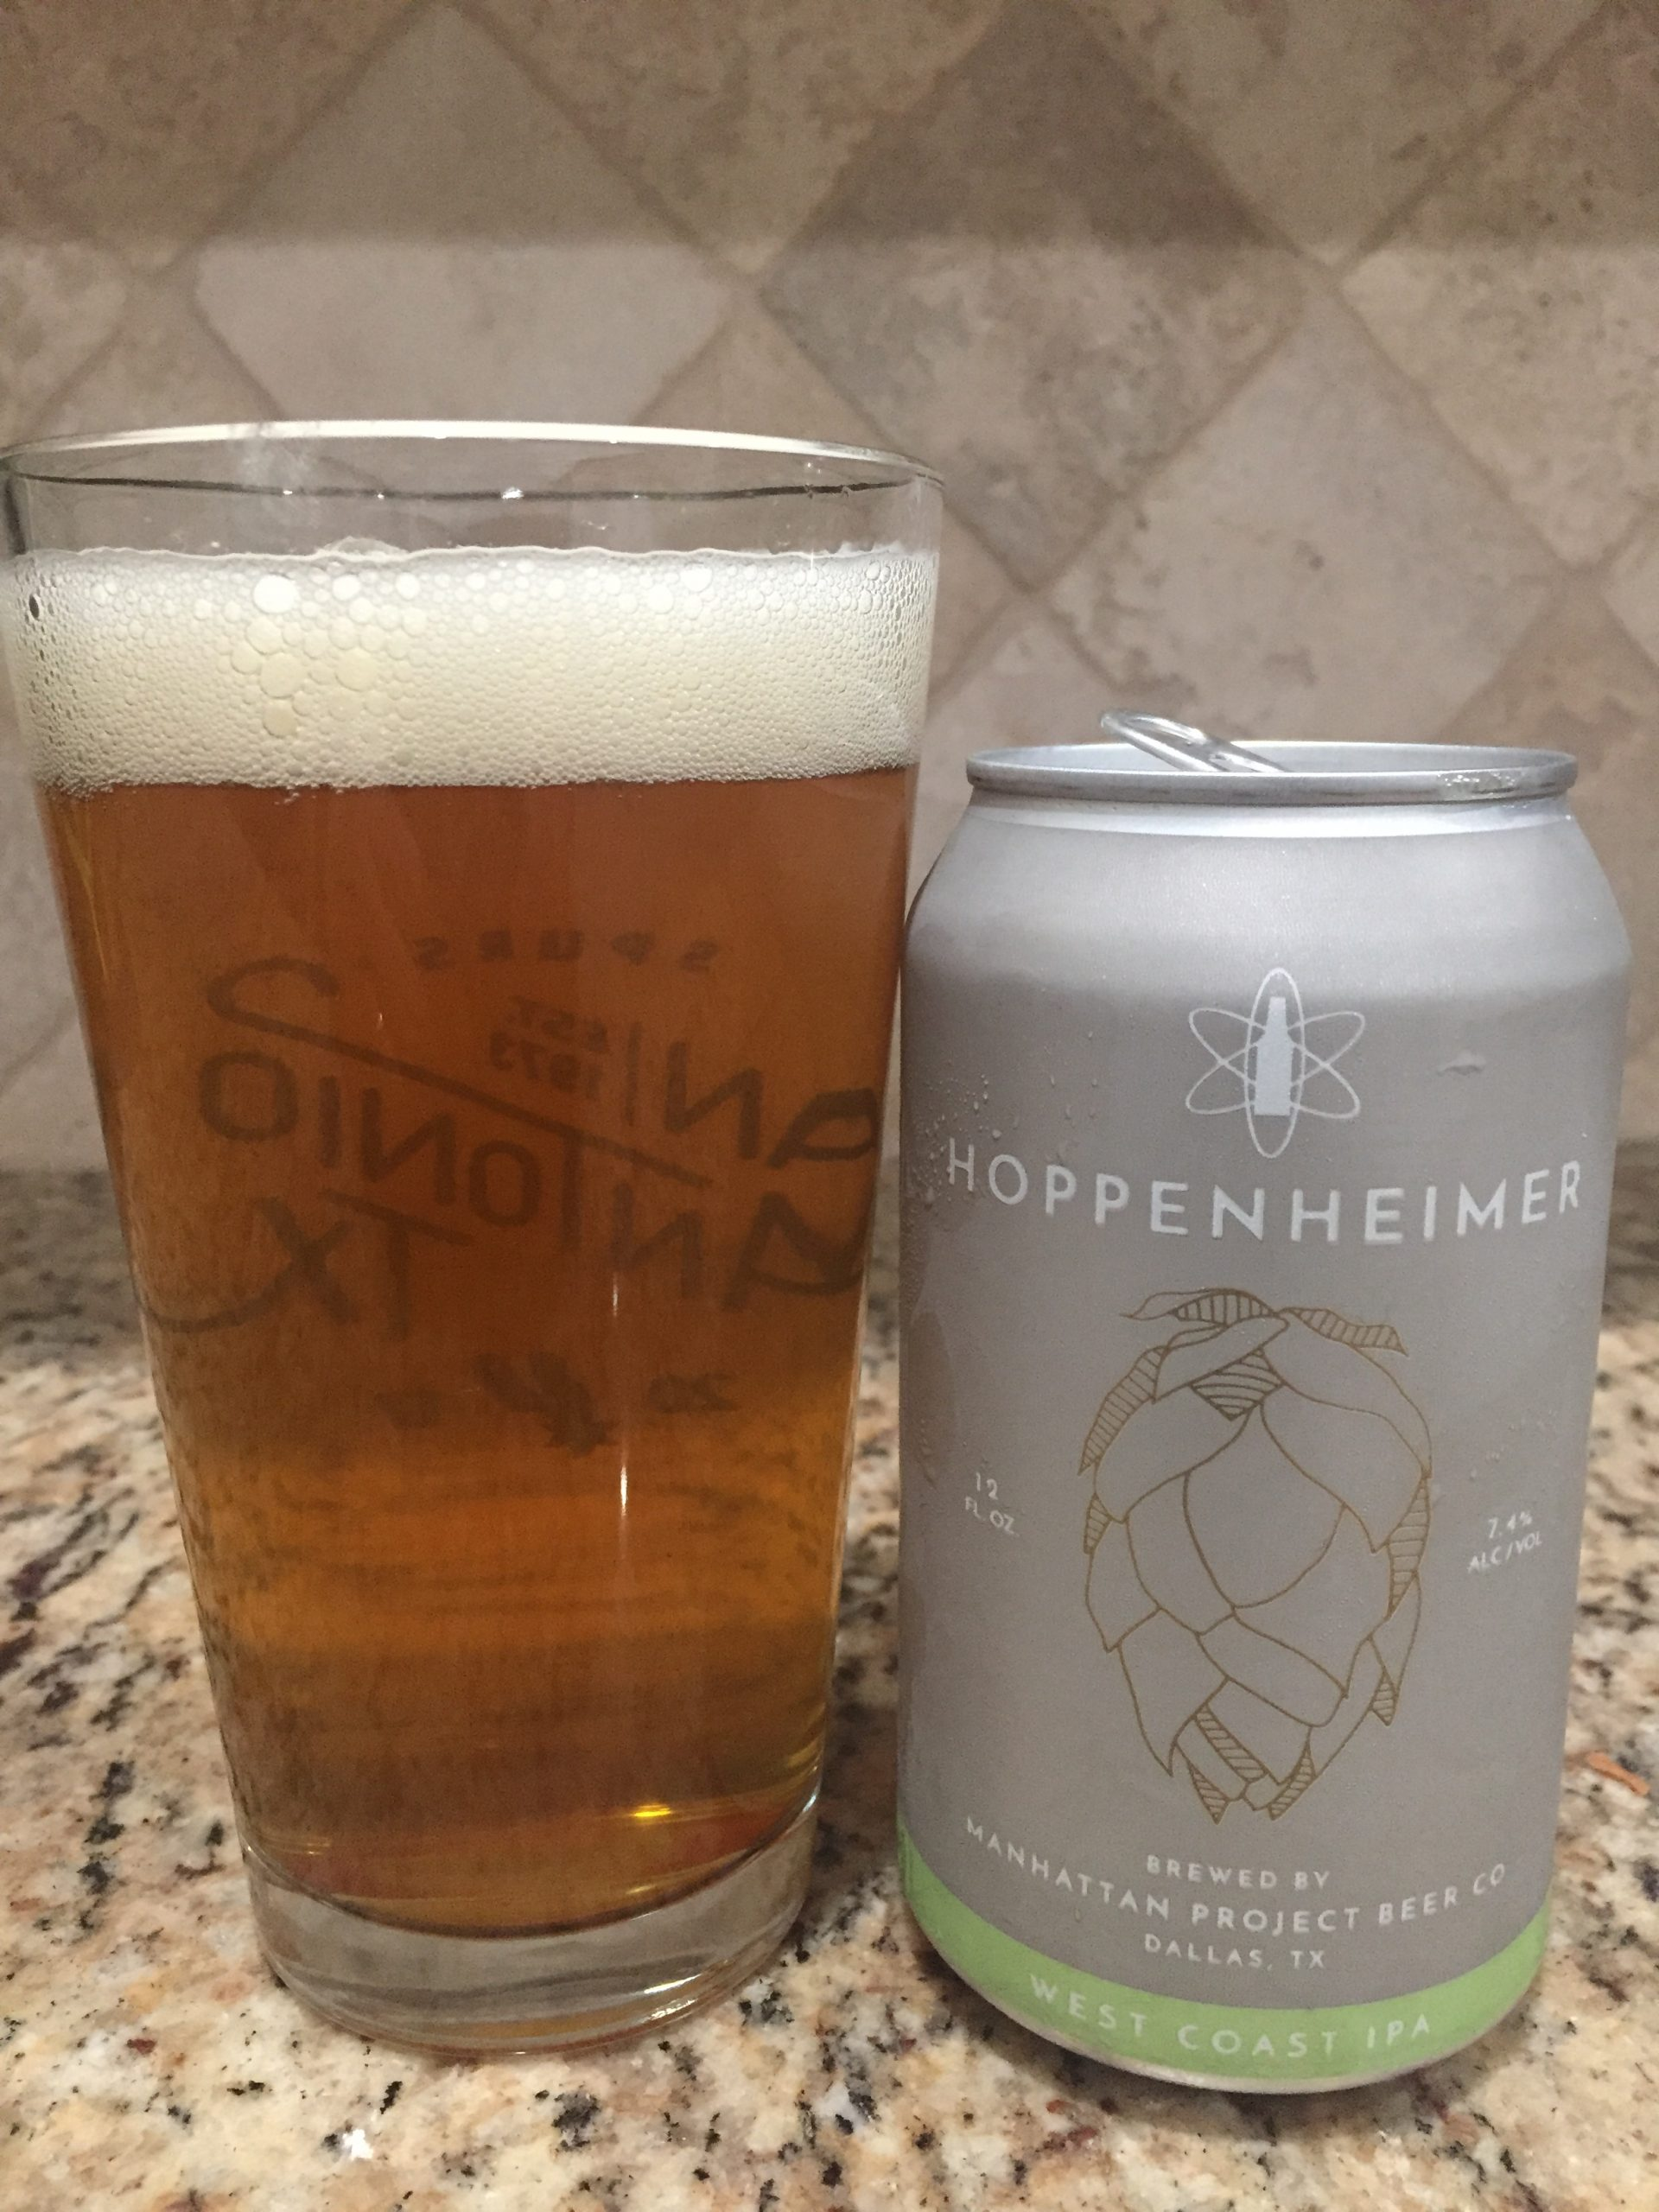 A can of Hoppenhimer IPA from Manhattan Project Beer company is next to a pint glass filled with the golden hazy beer.